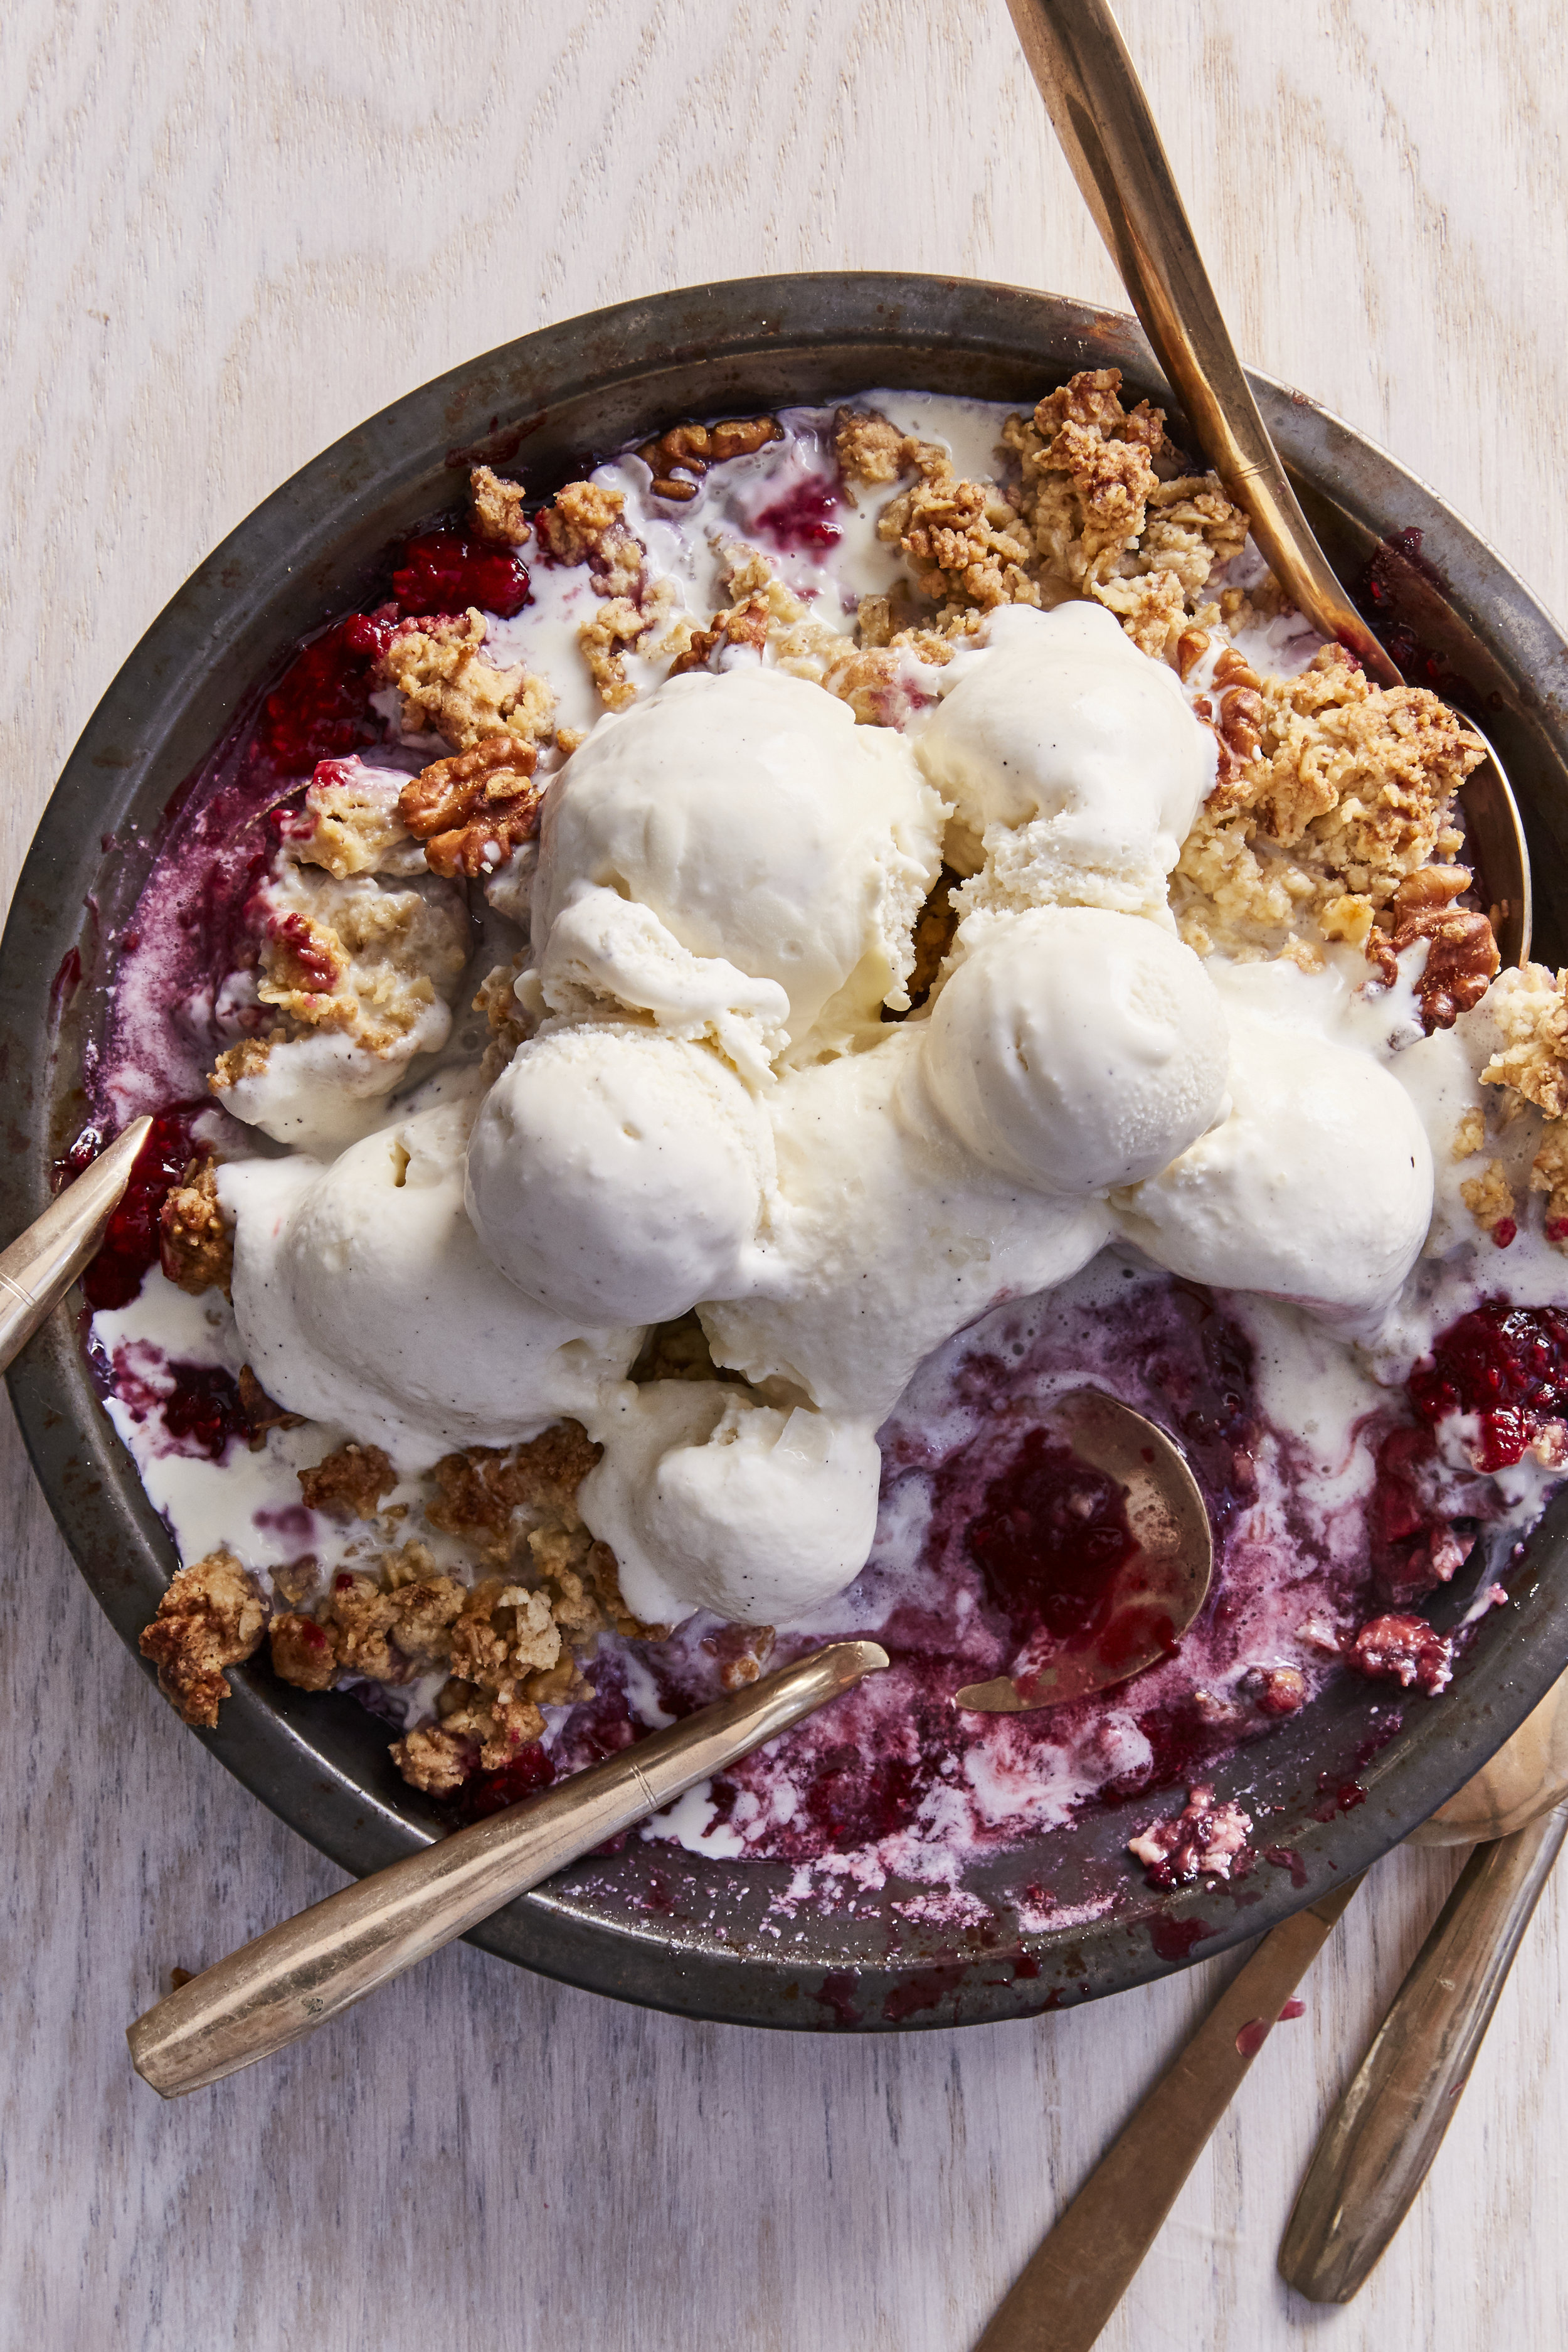 Raspberry Rhubarb Crumble #everydayissaturdaycookbook #easybaking #rhubarb #crumble #icecream